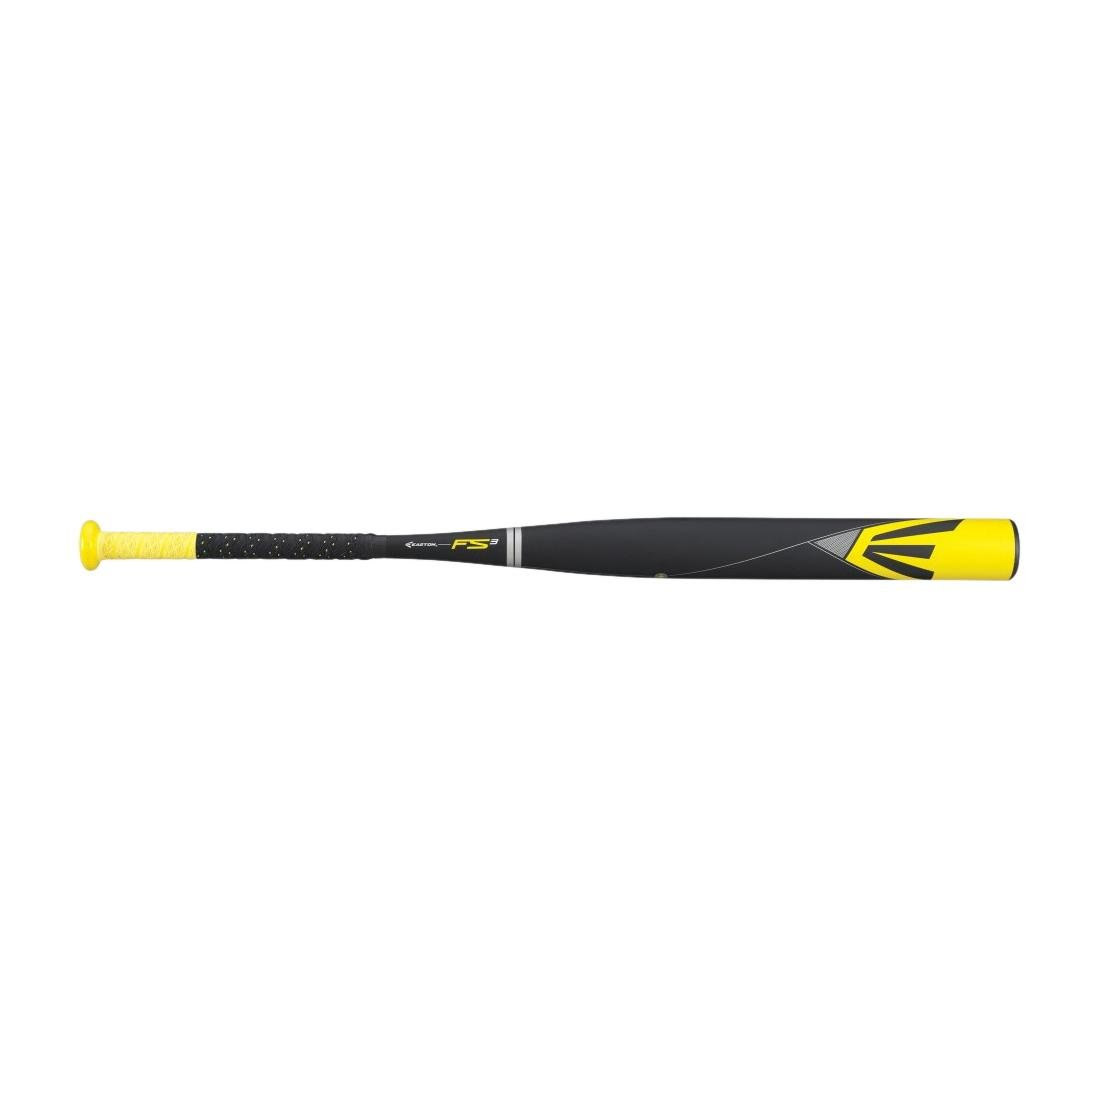 イーストンfp14s3 fs3複合Fastpitch Softball Bat B00JXW5IVWYellow/Black/Medium Yellow 33\